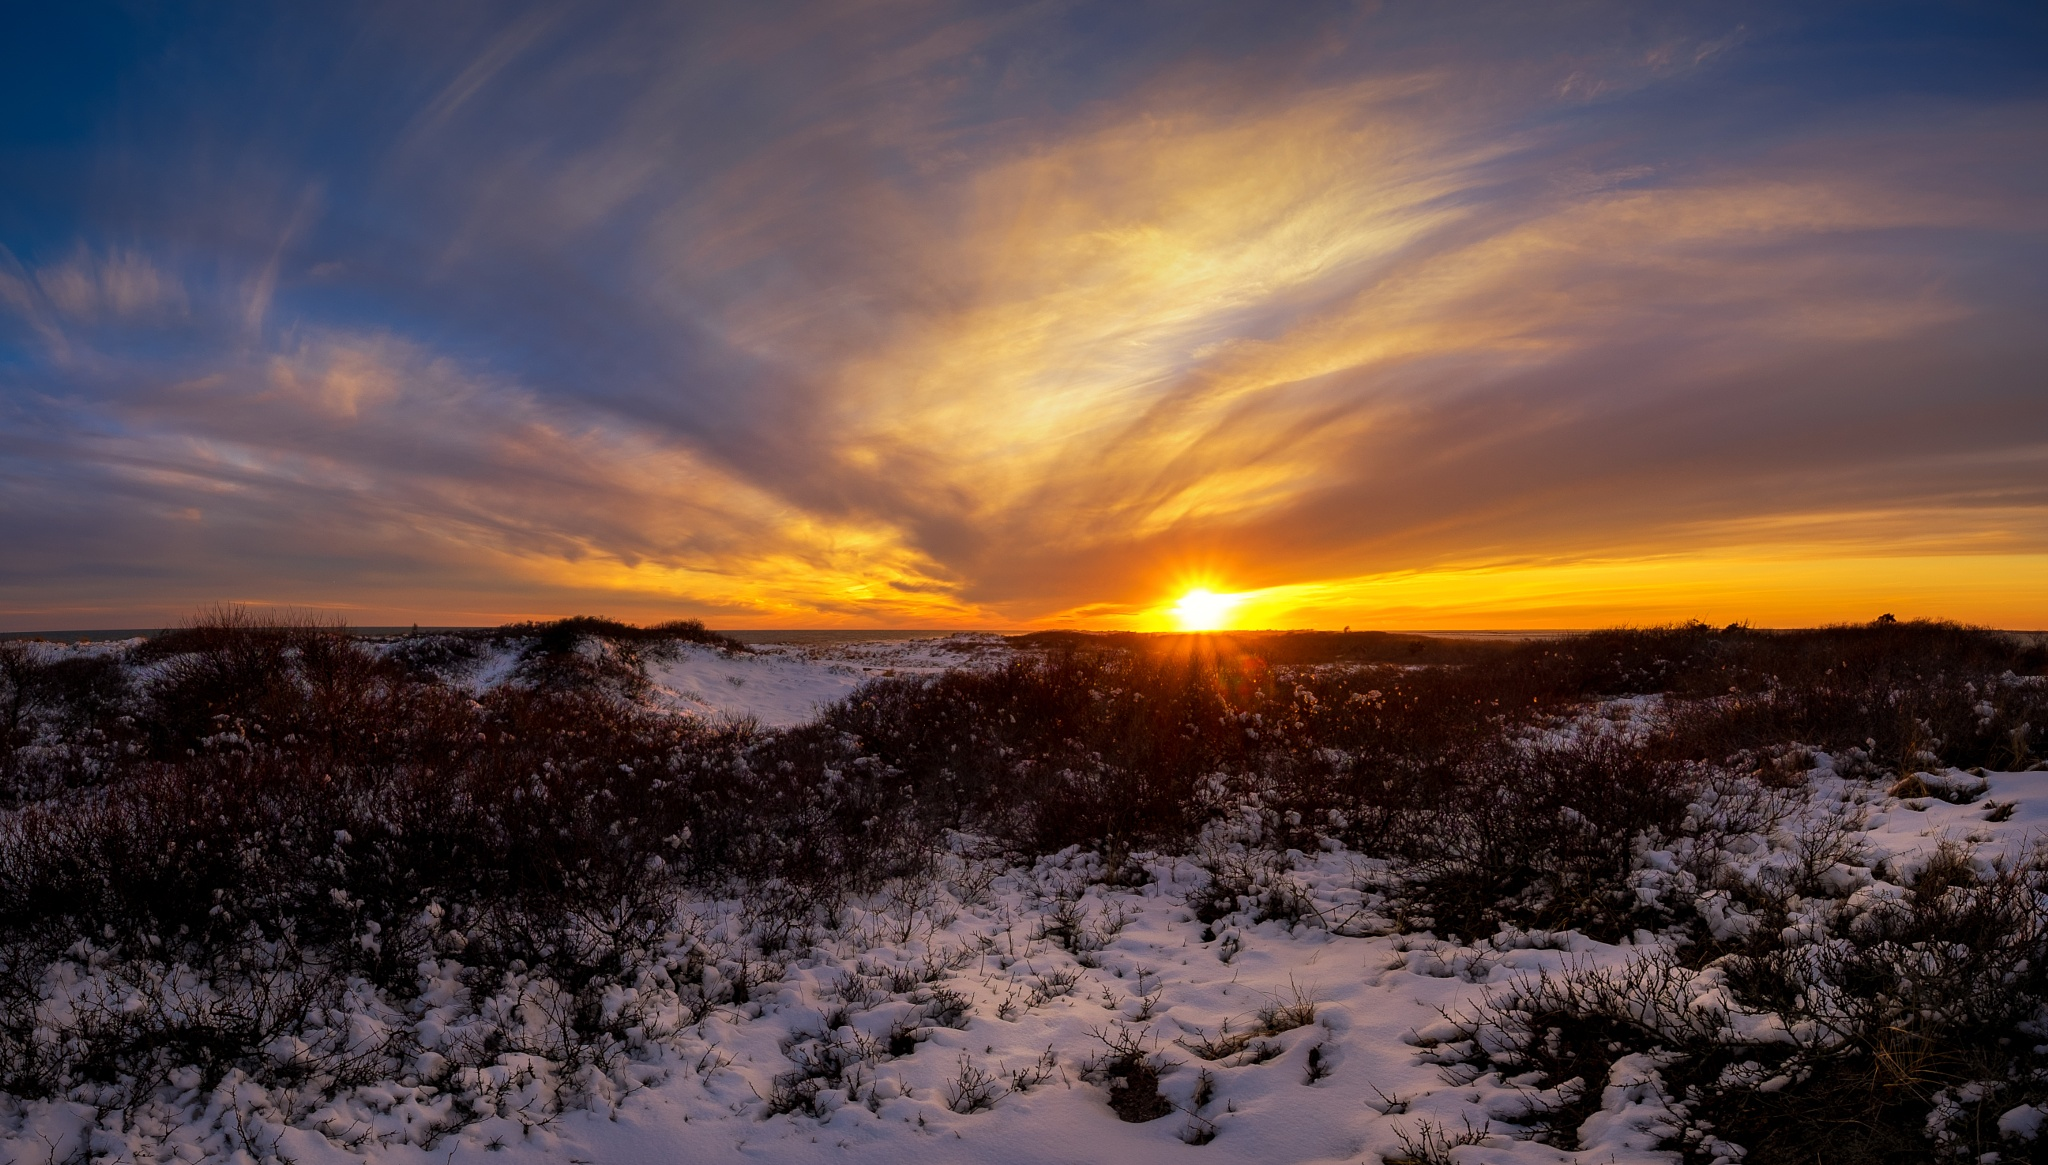 Winter Sunset by Dominick Chiuchiolo